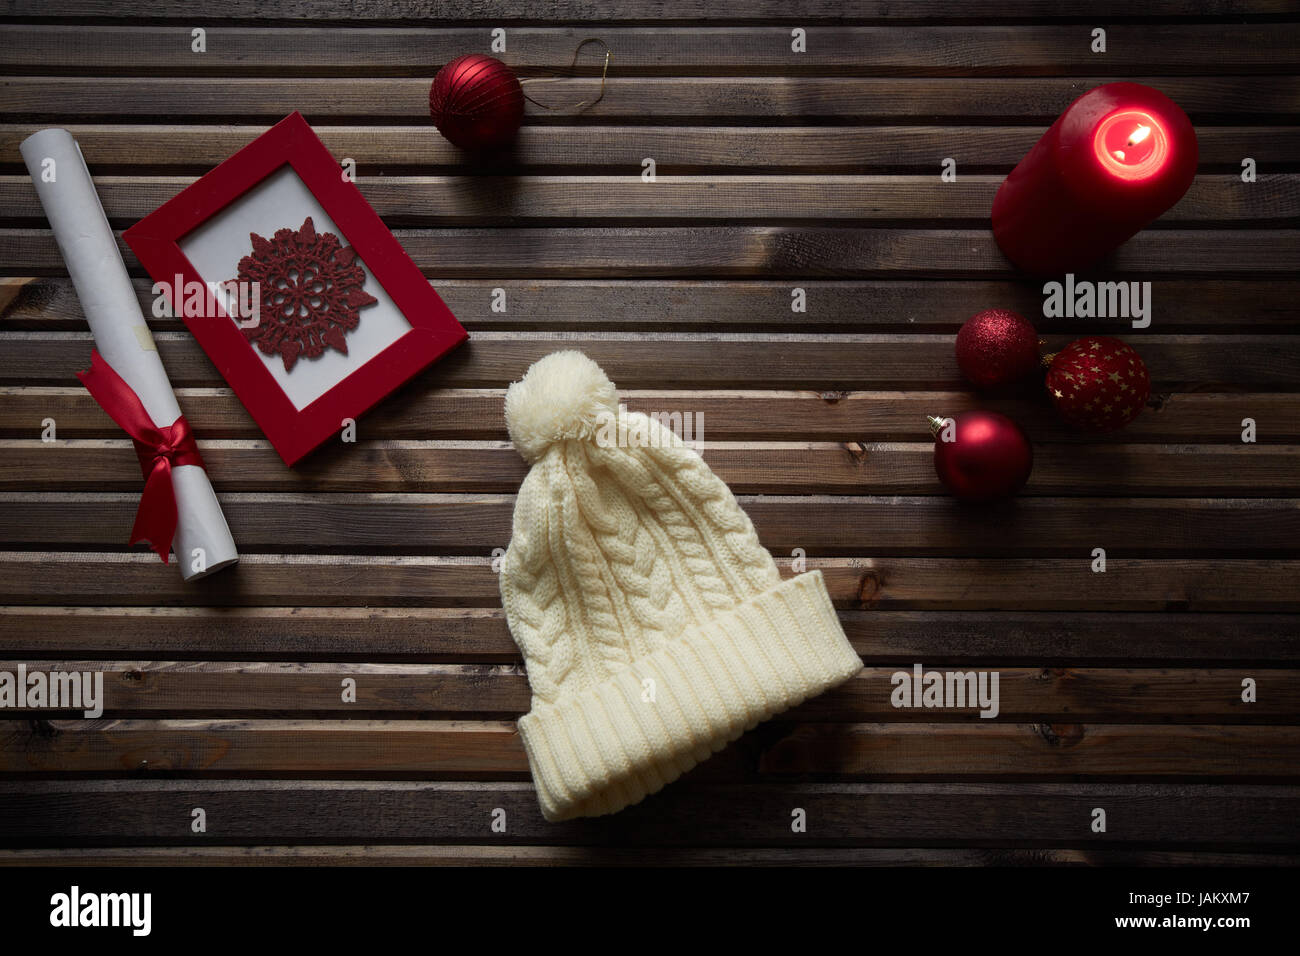 Image of red snowflake in frame, decorative toy balls, white cap, burning candle and rolled paper wrapped with red - Stock Image